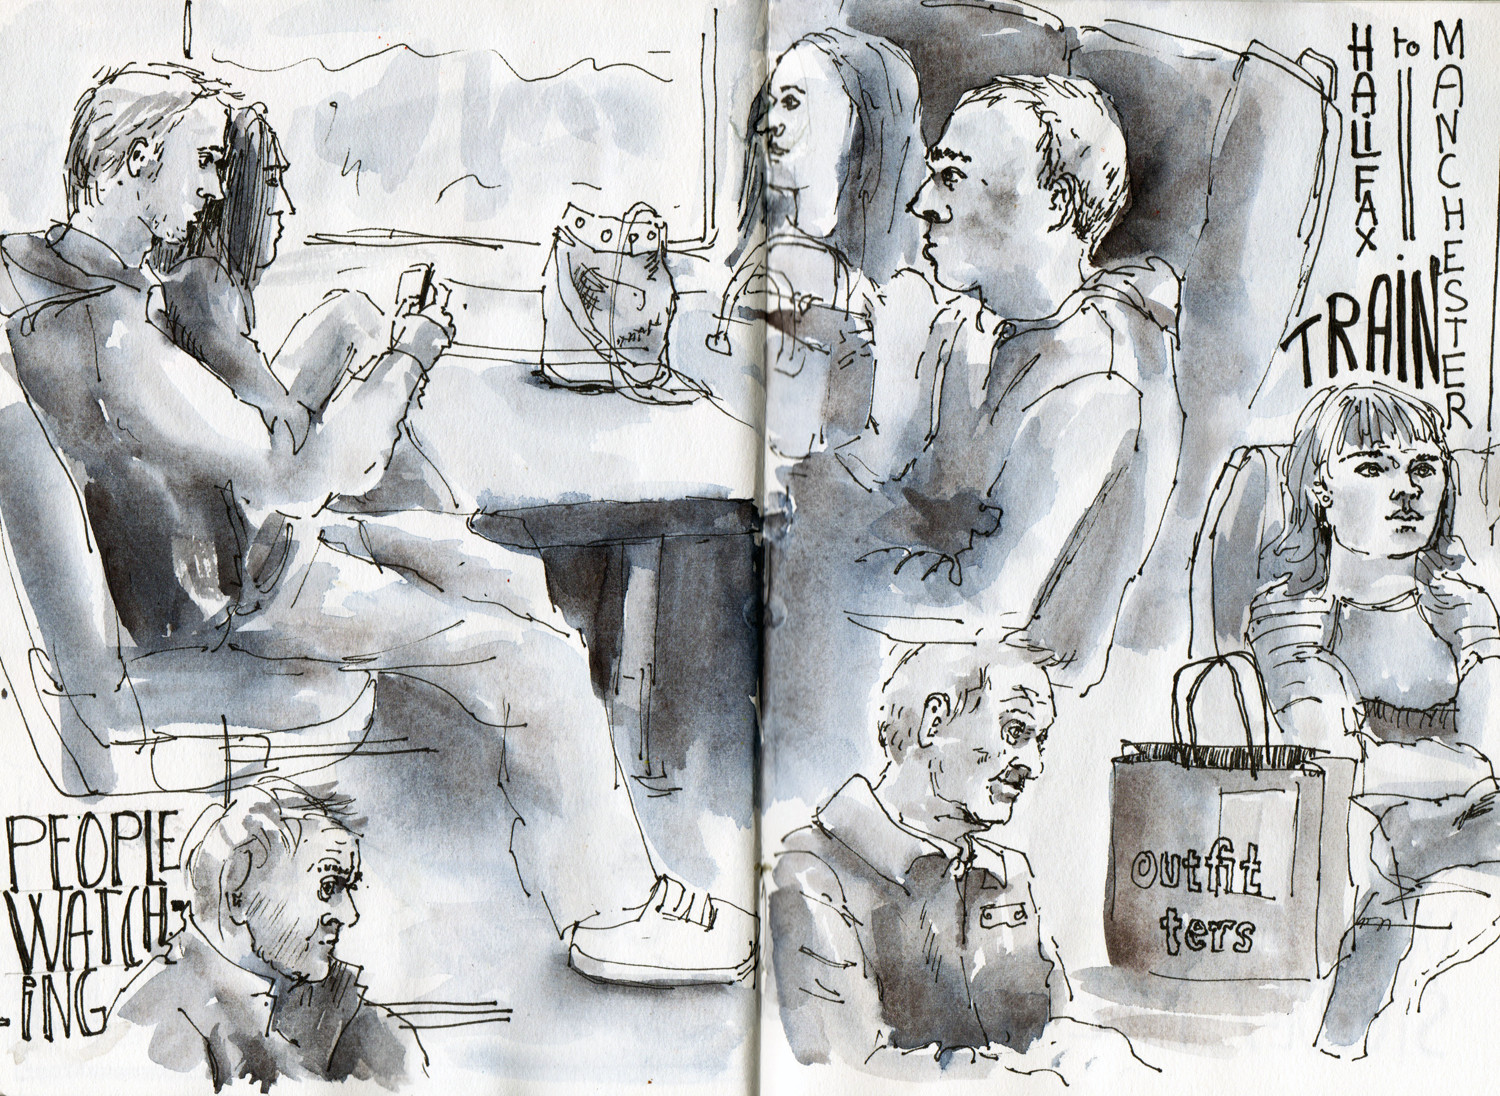 Sketching people on the train - Ink and watercolour drawing by Sophie Peanut